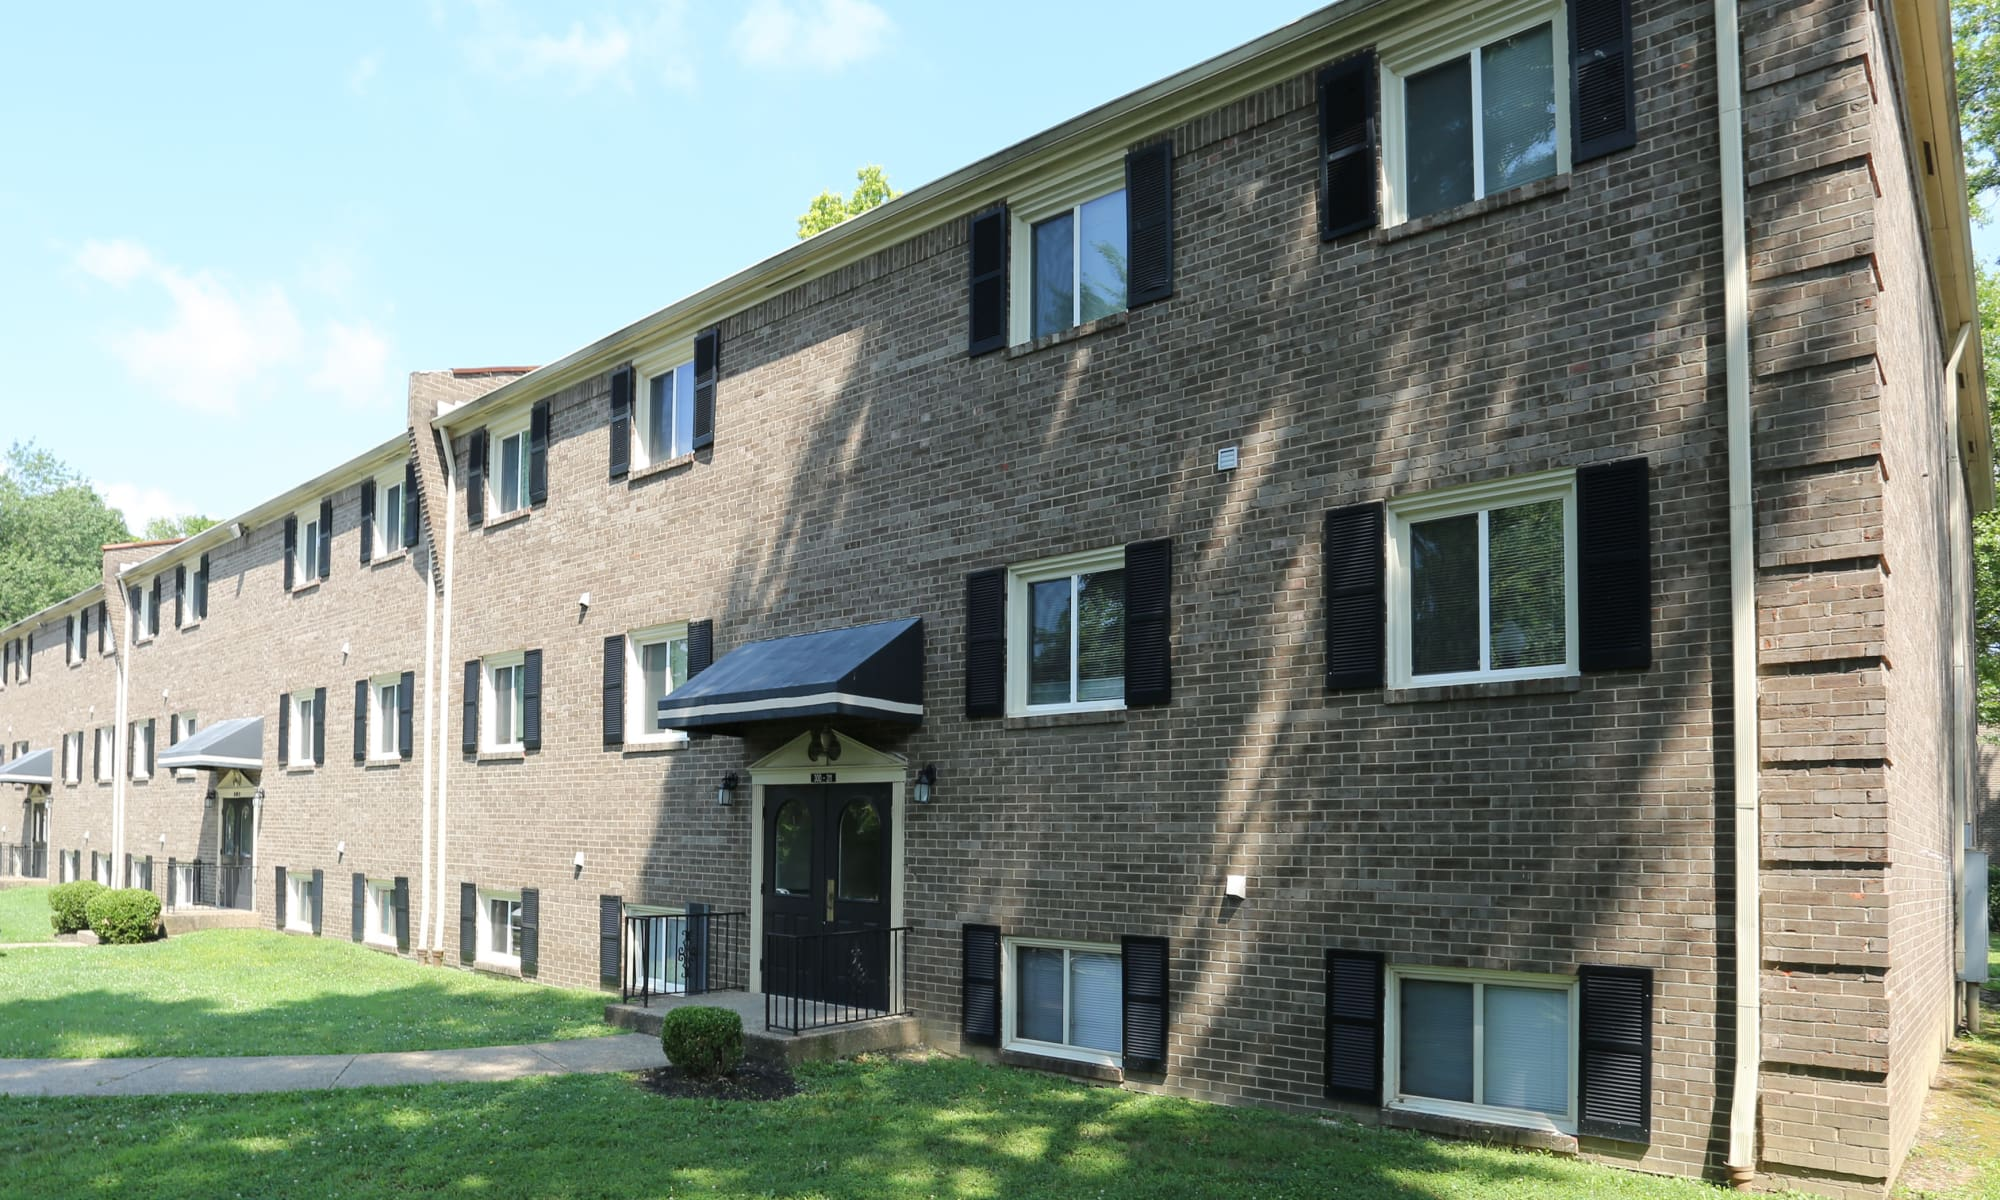 Louisville Ky Apartments For Rent Iroquois Garden Apartments